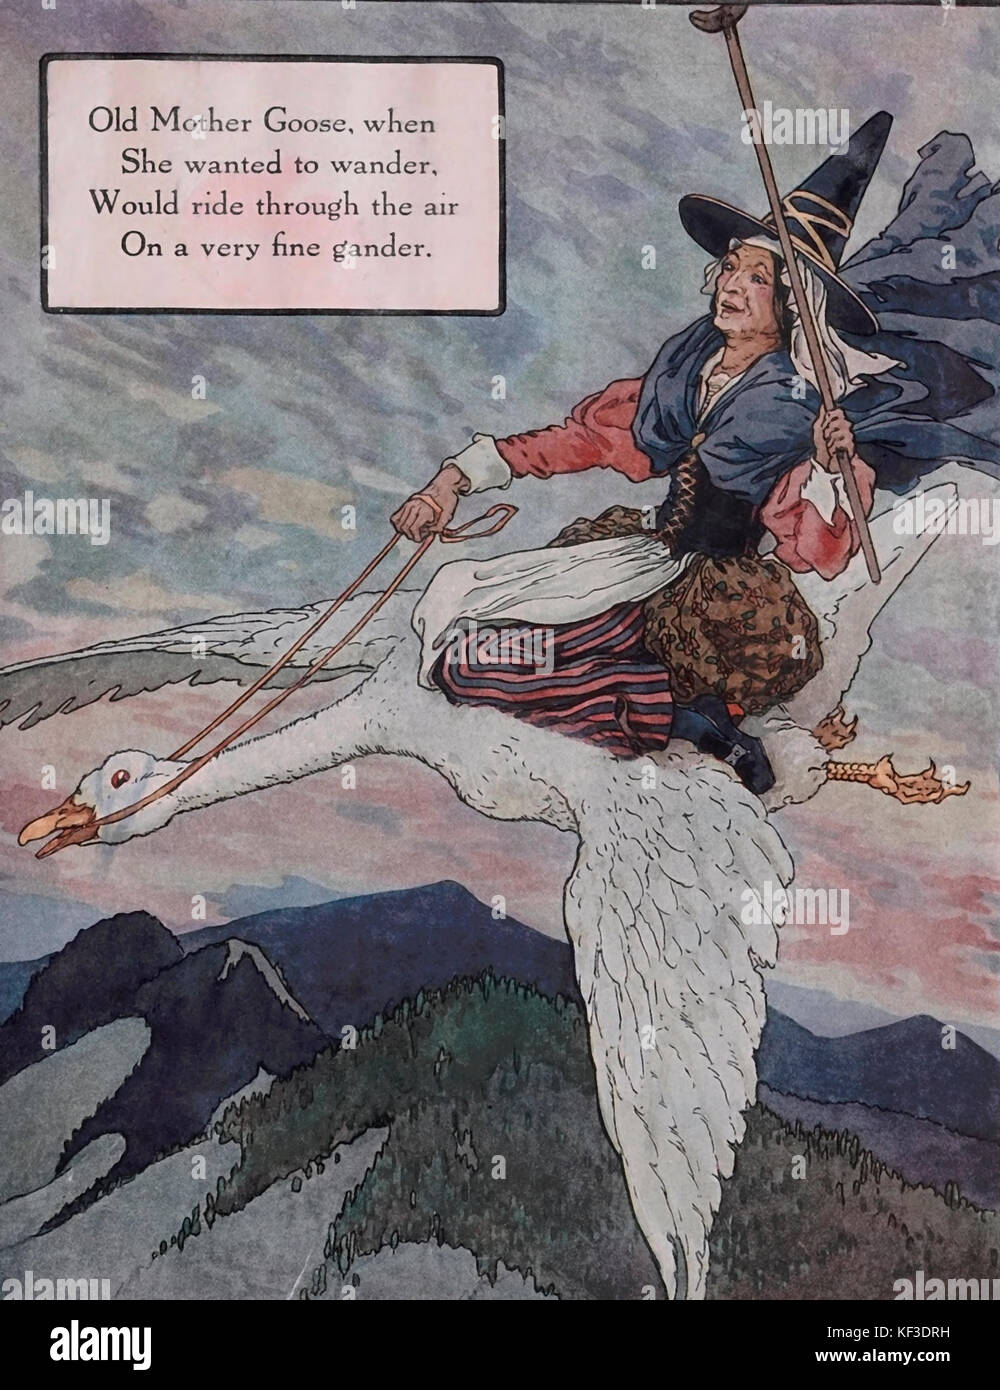 Old Mother Goose, when she wanted to wander, would ride through the air on a very fine gander - Mother Goose Nursery - Stock Image